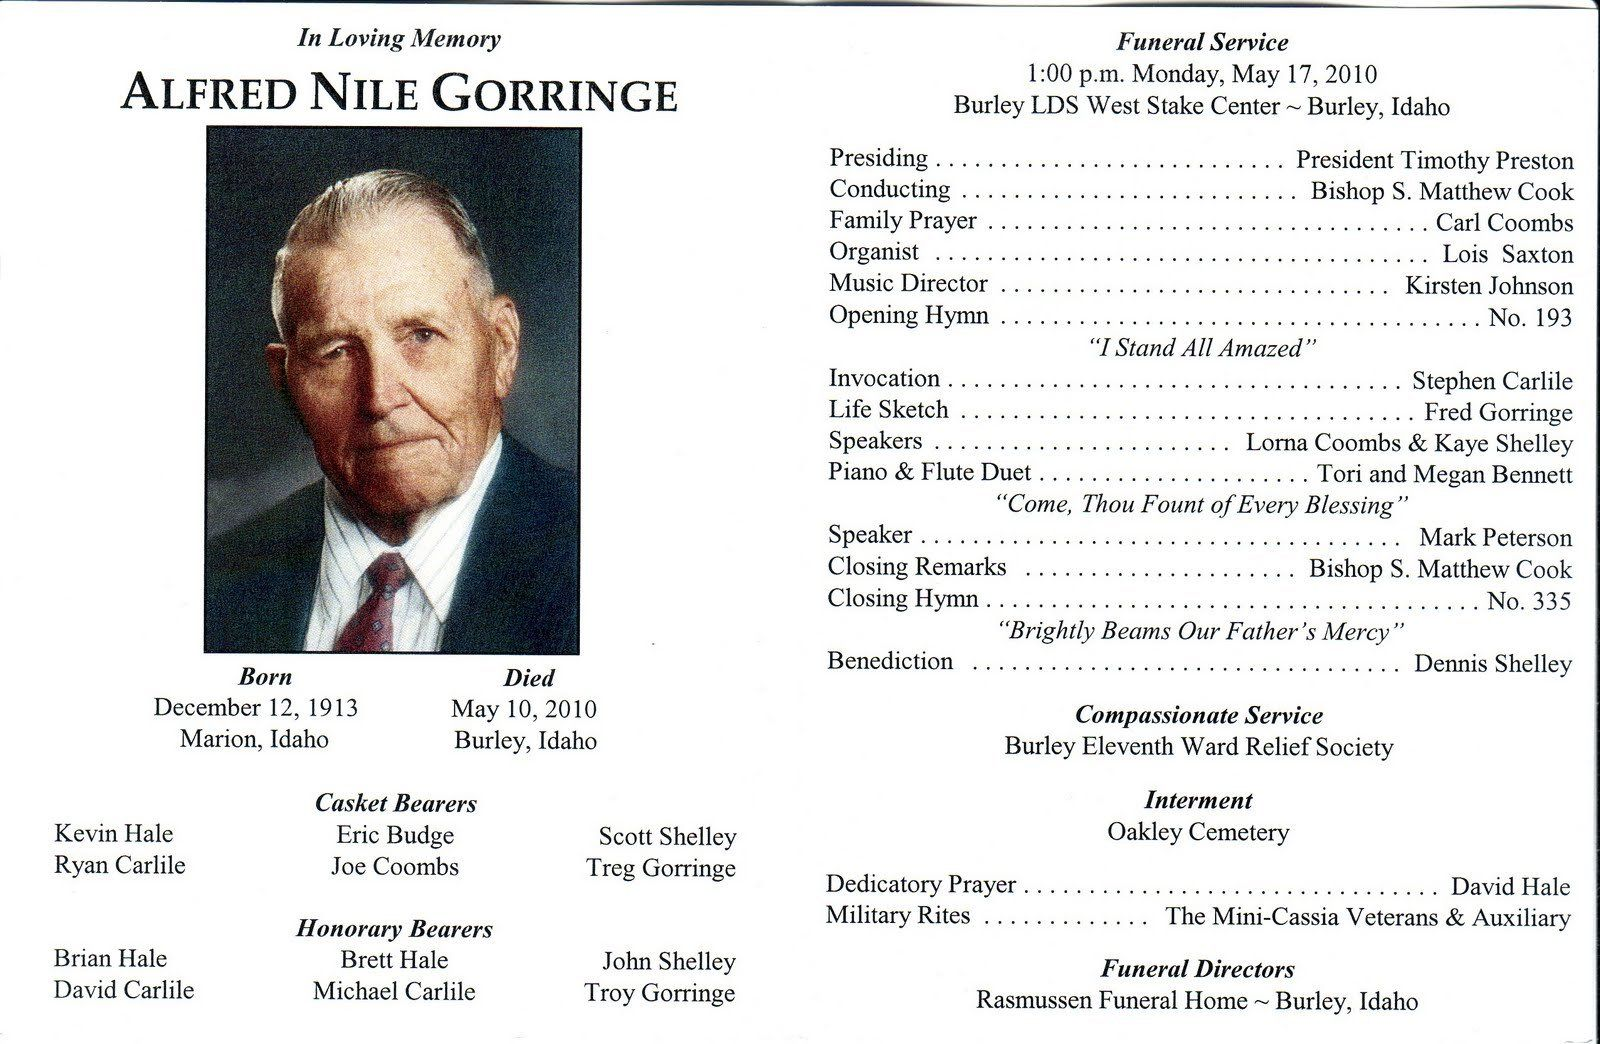 Memorial Service Programs Sample  Lds Burial And Mormon Funeral